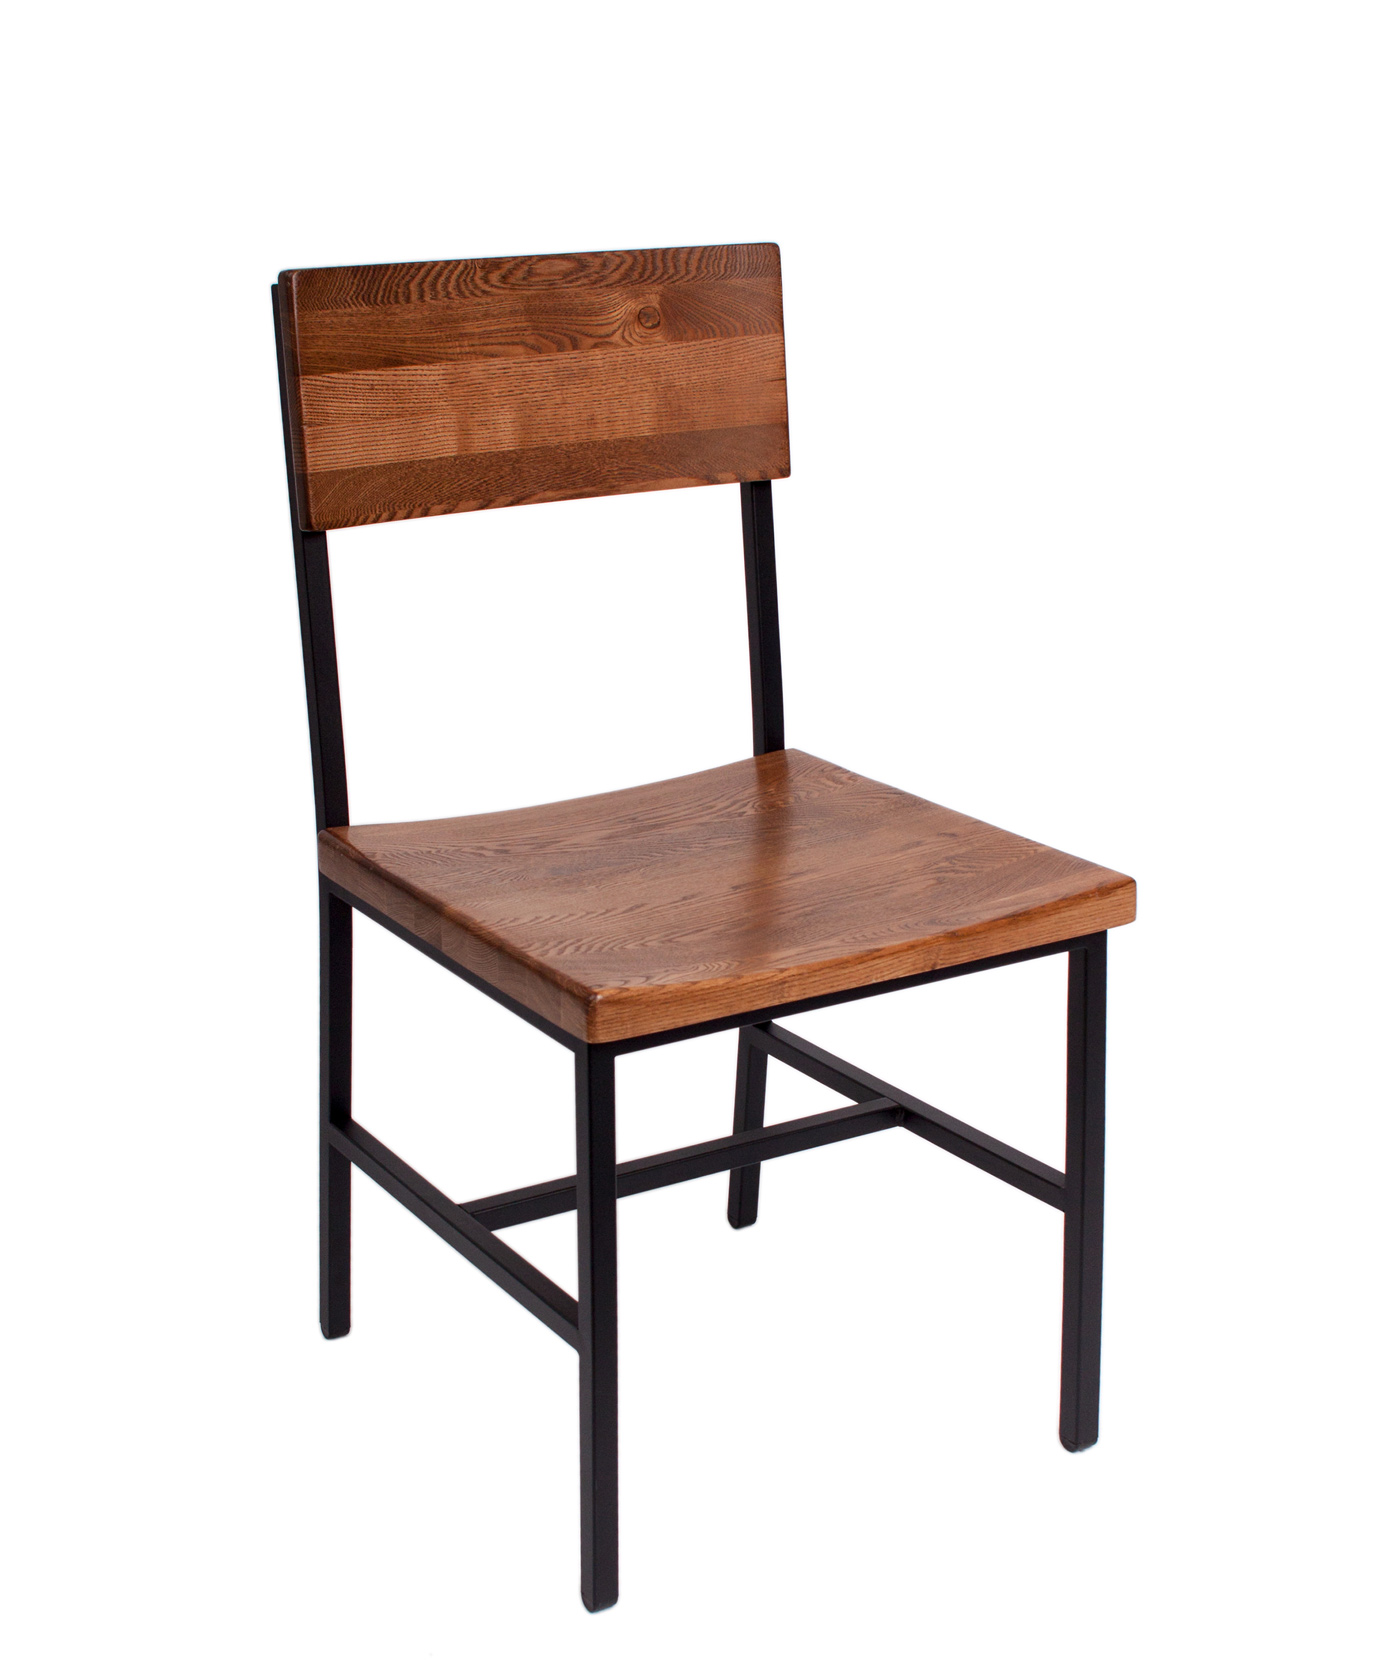 BFM Memphis Sand Black Steel Side Chair with Autumn Ash Wooden Back and Seat  sc 1 st  Outdoor Restaurant Seating & Memphis Sand Black Steel Side Chair with Autumn Ash Wooden Back and Seat